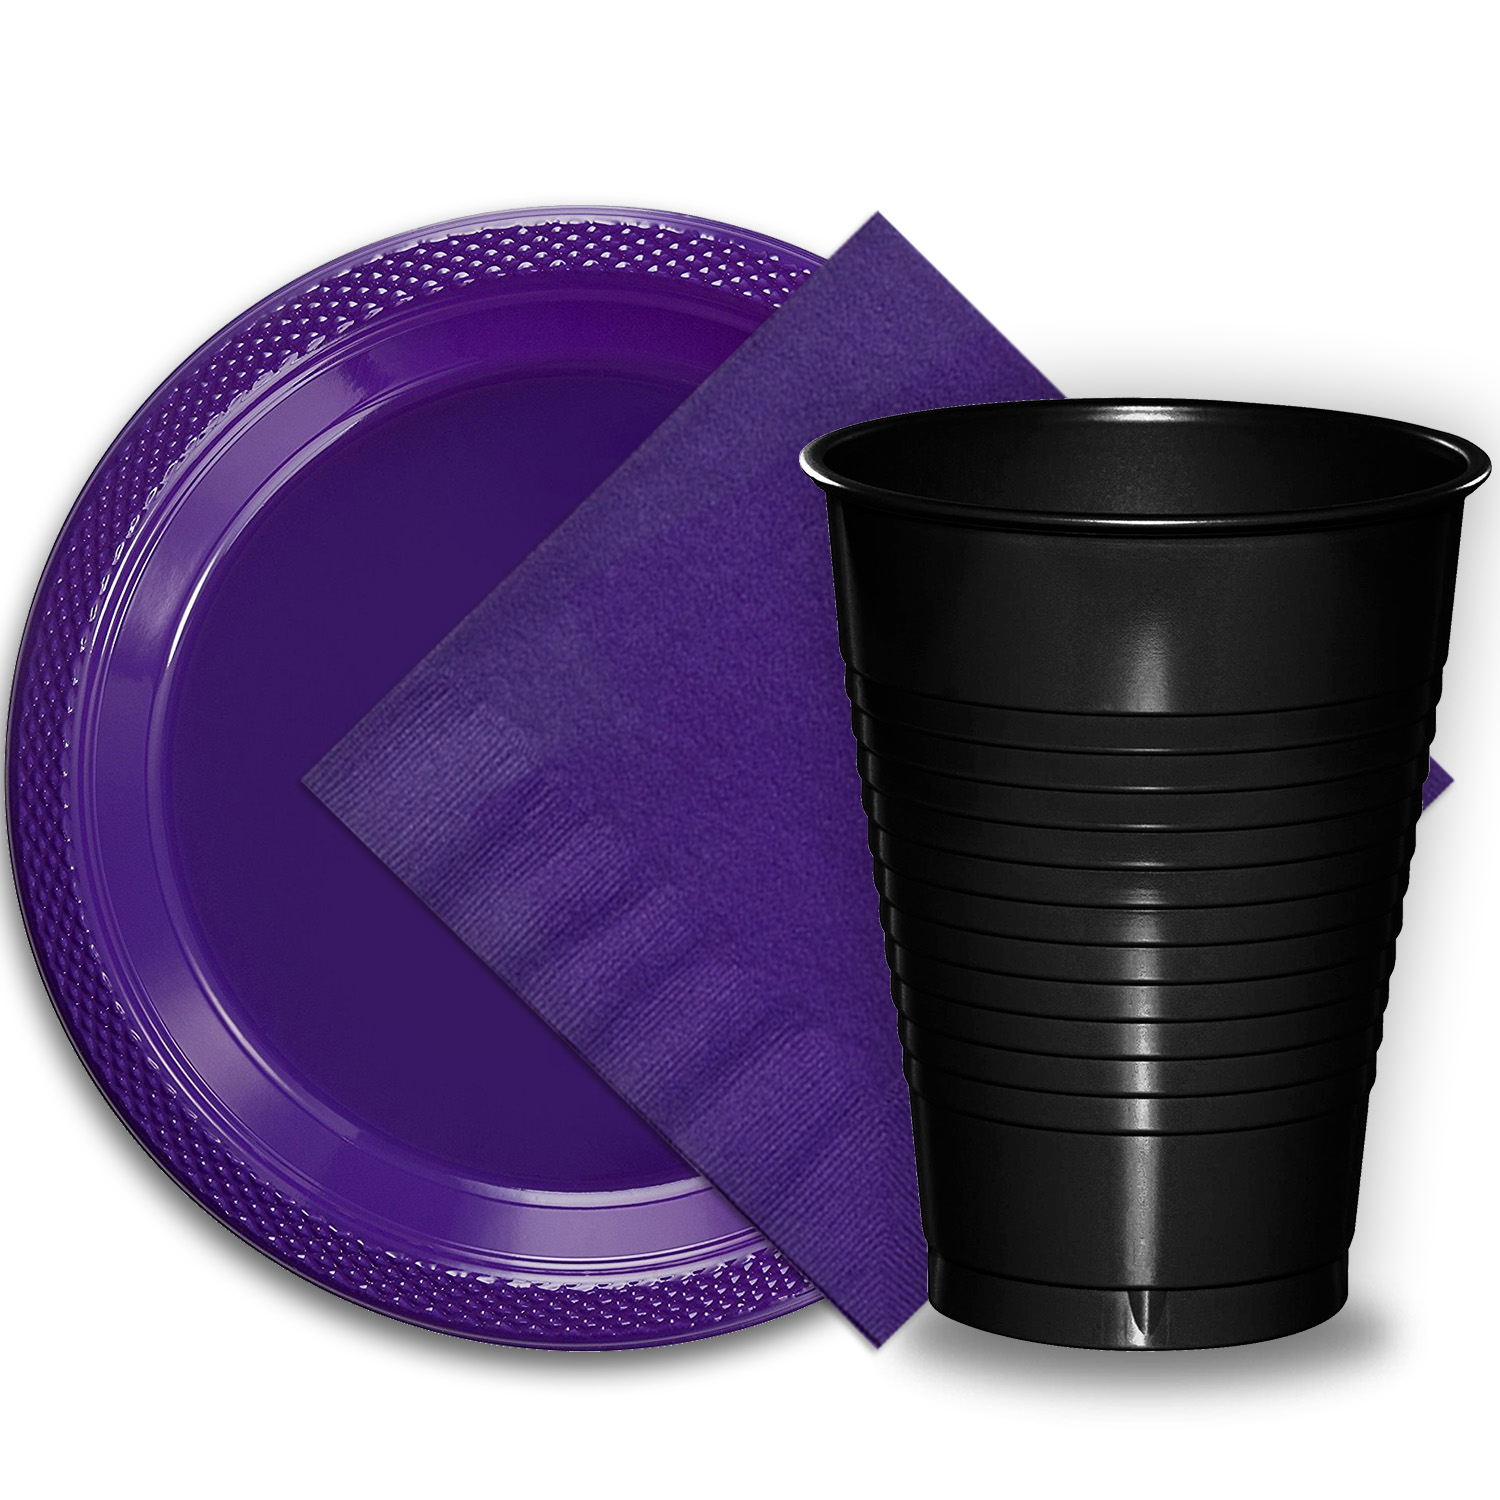 """50 Purple Plastic Plates (9""""), 50 Black Plastic Cups (12 oz.), and 50 Purple Paper Napkins, Dazzelling Colored Disposable Party Supplies Tableware Set for Fifty Guests."""